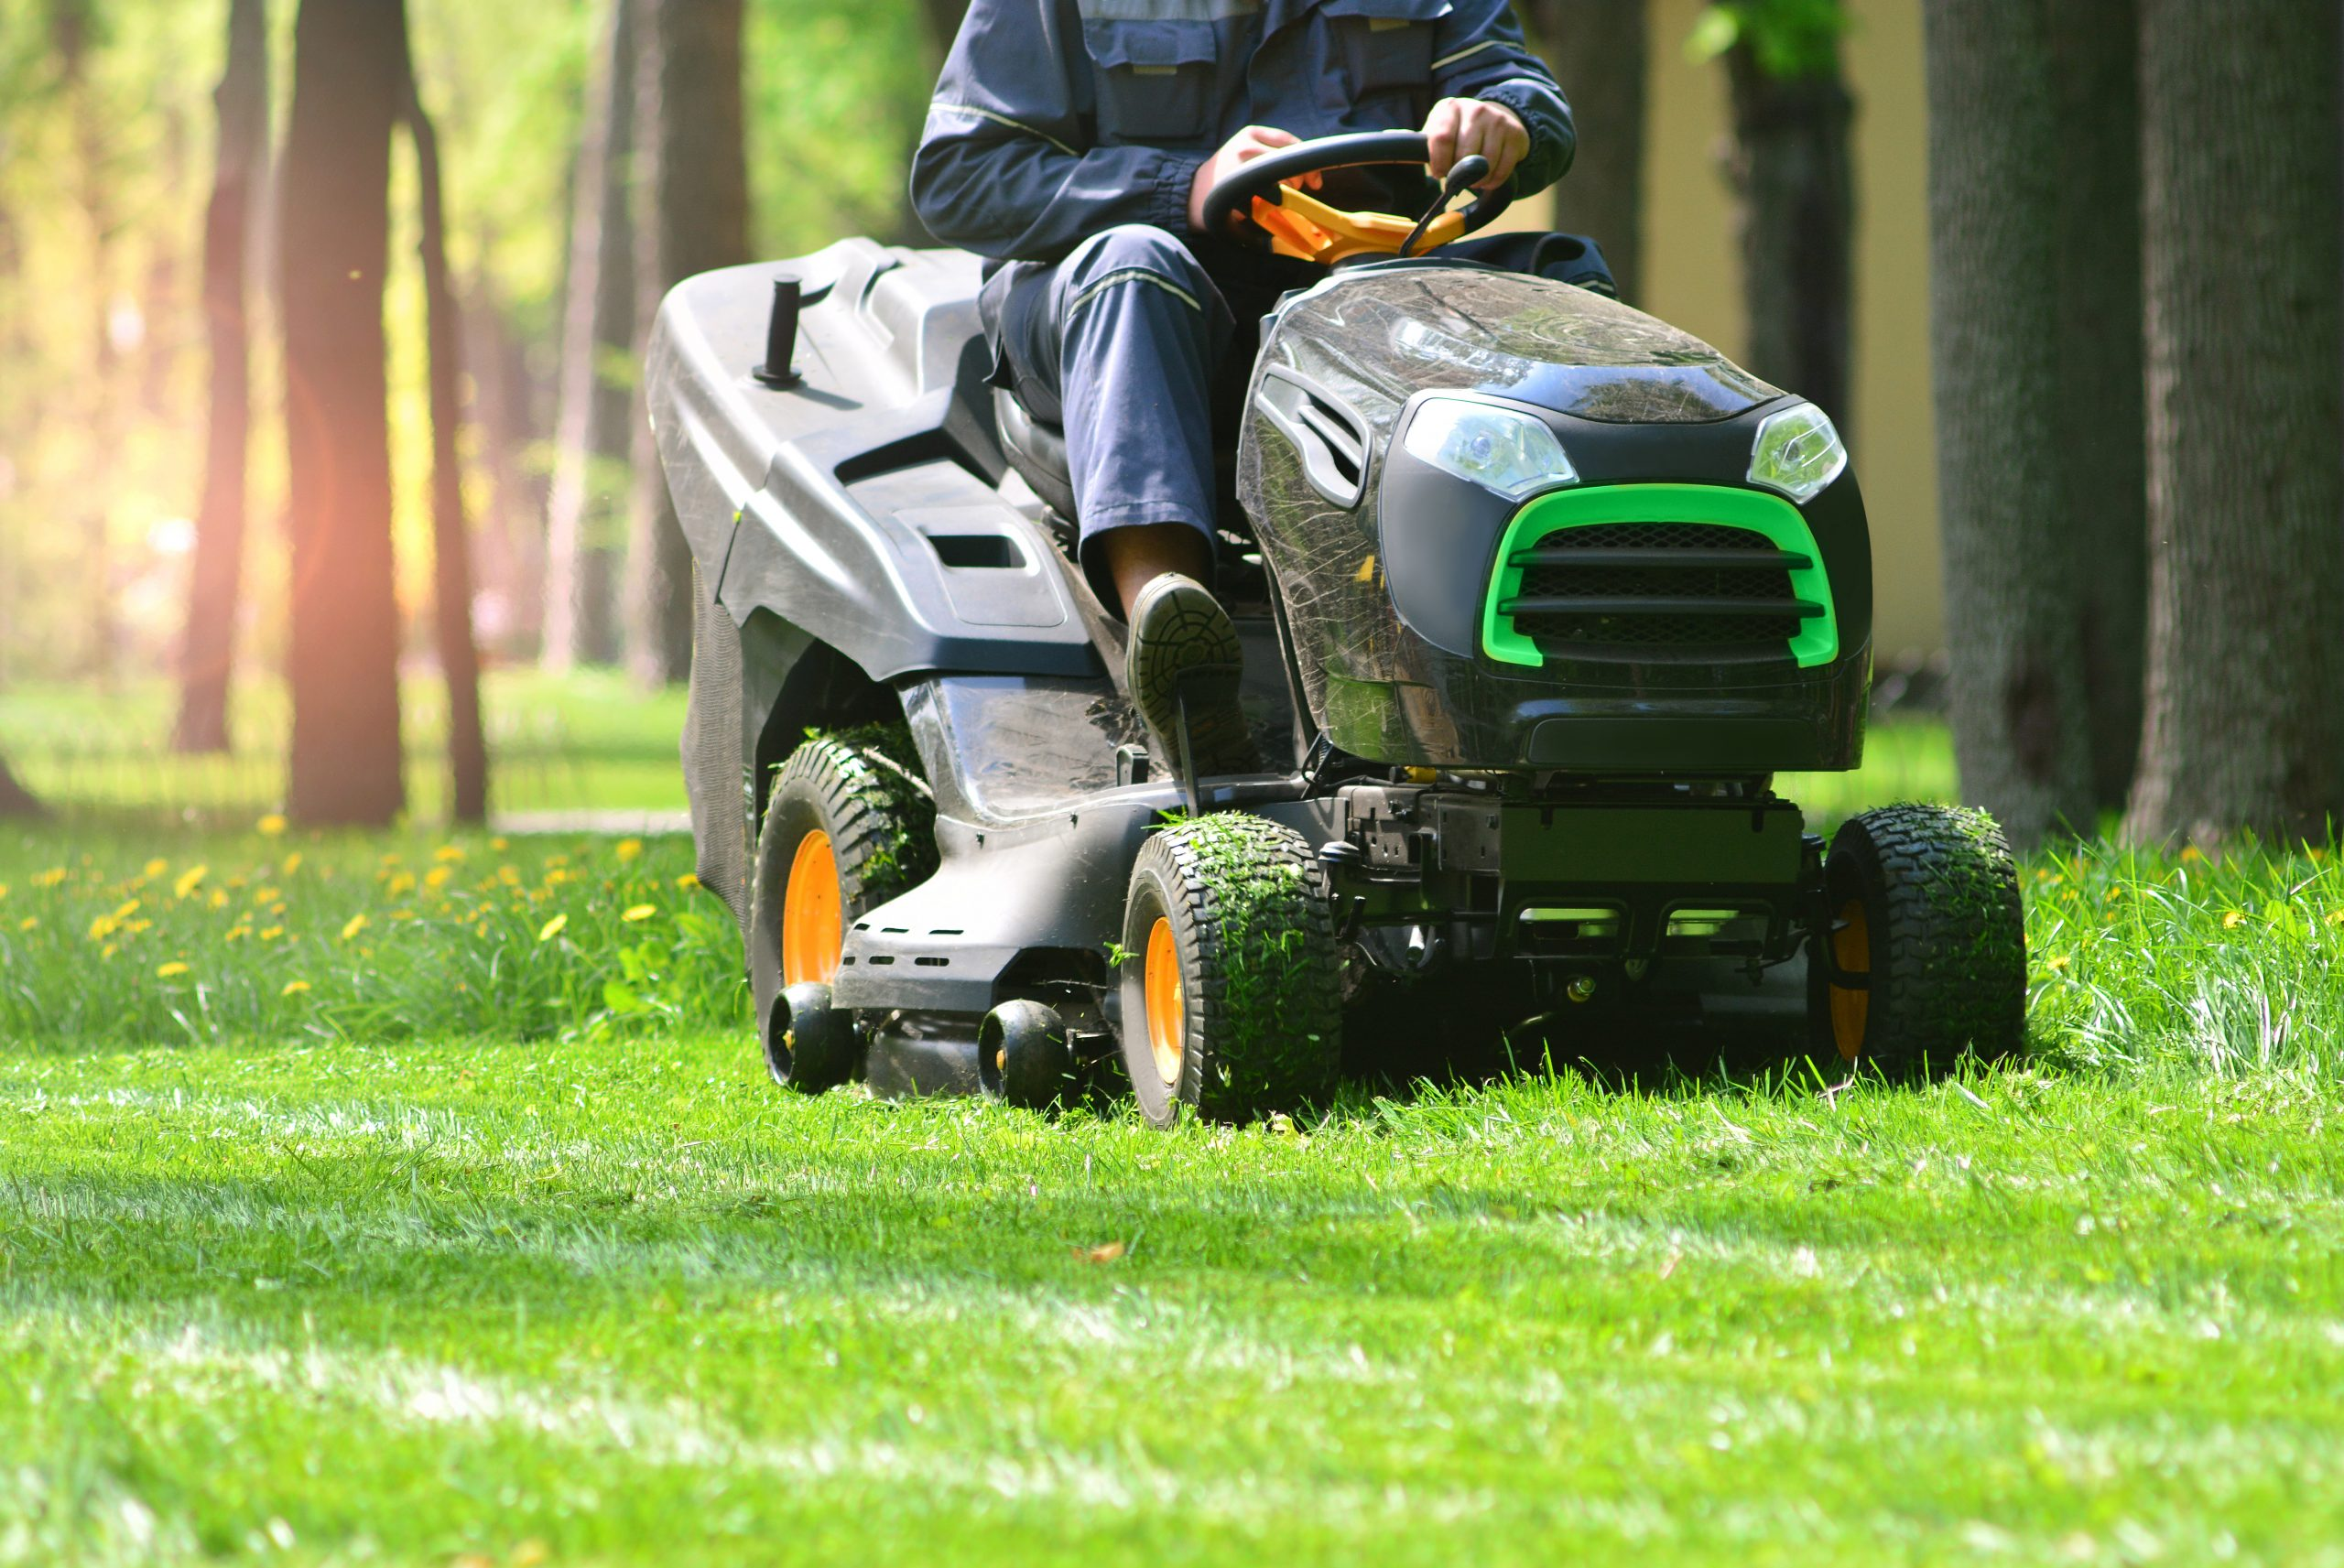 The 10 Best Riding Lawn Mowers to Buy 2021